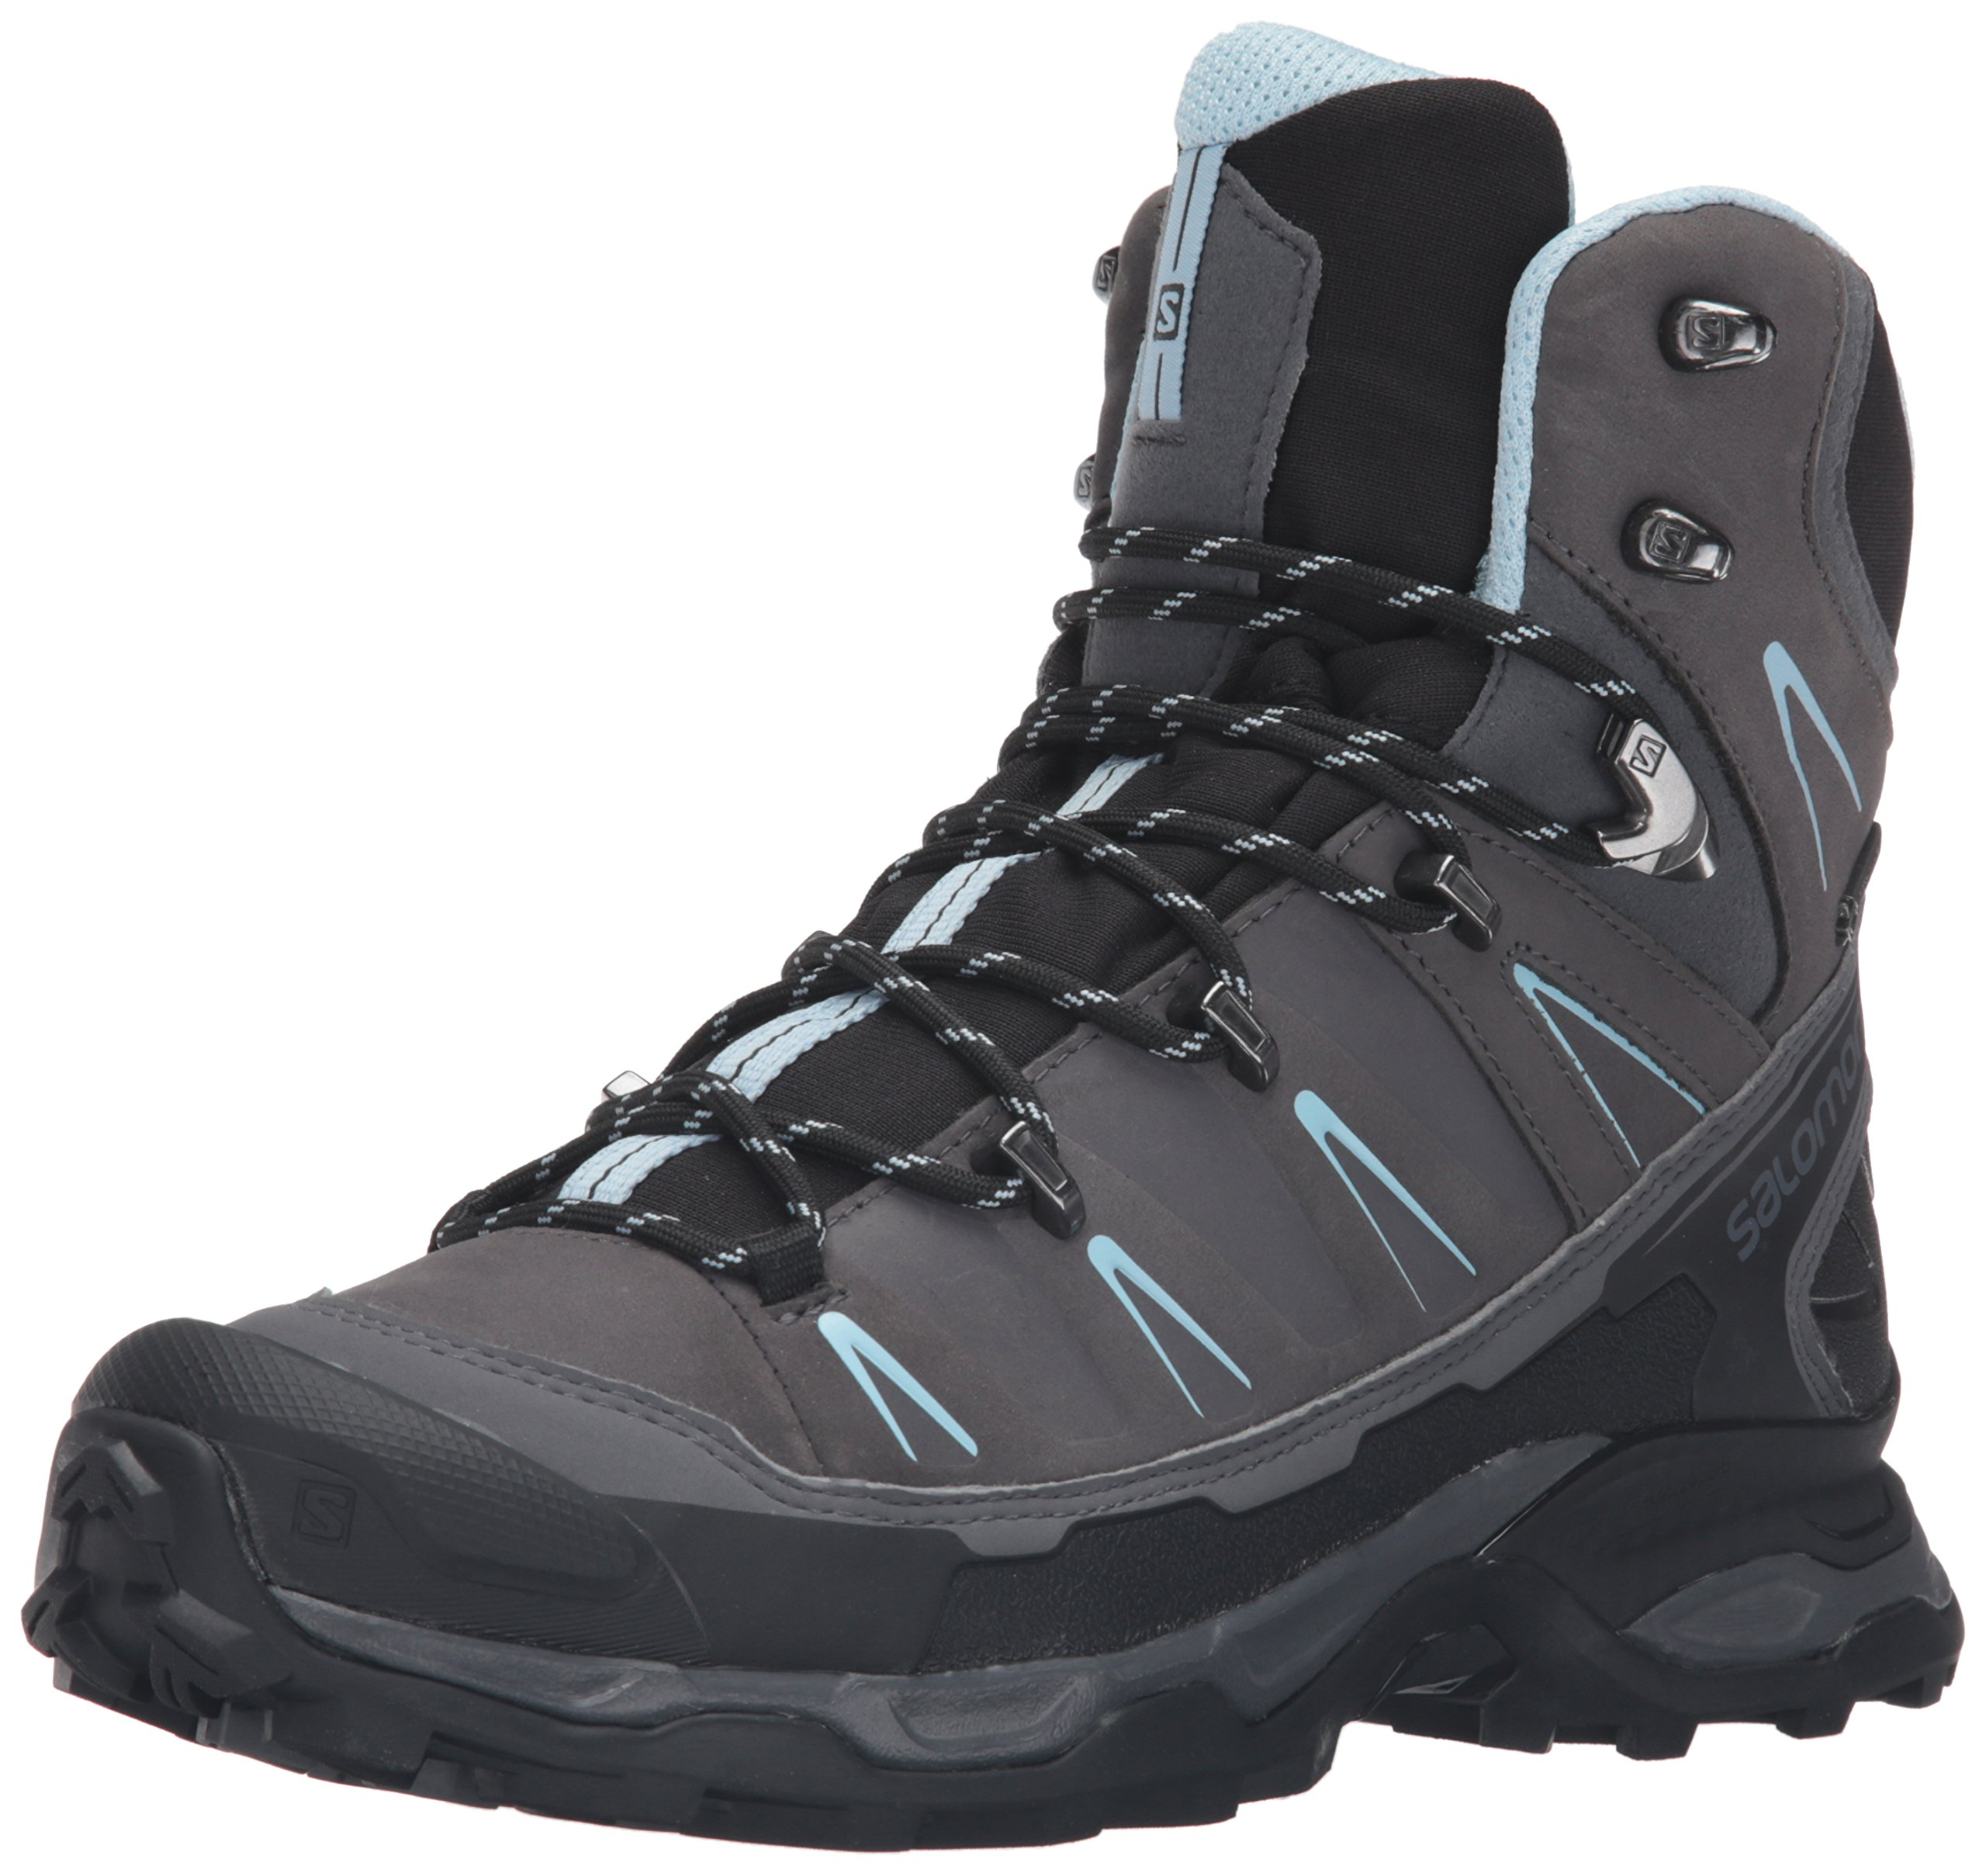 Salomon Women's X Ultra Trek Gtx W Backpacking Boot, Dark Cloud/Black/Cristal, 8.5 M US